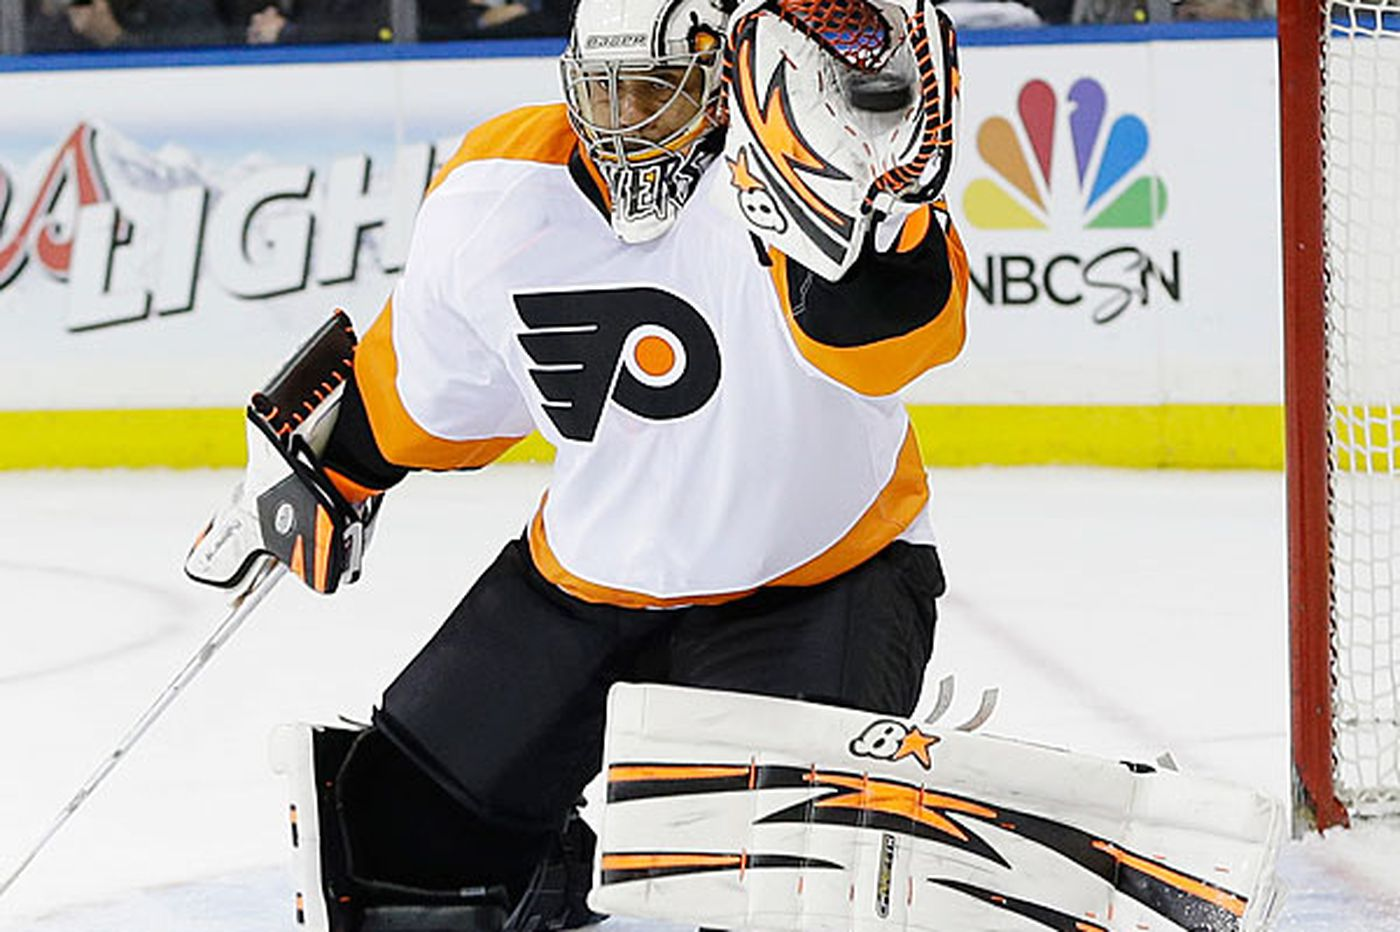 Emery's play was not why Flyers lost to the Rangers